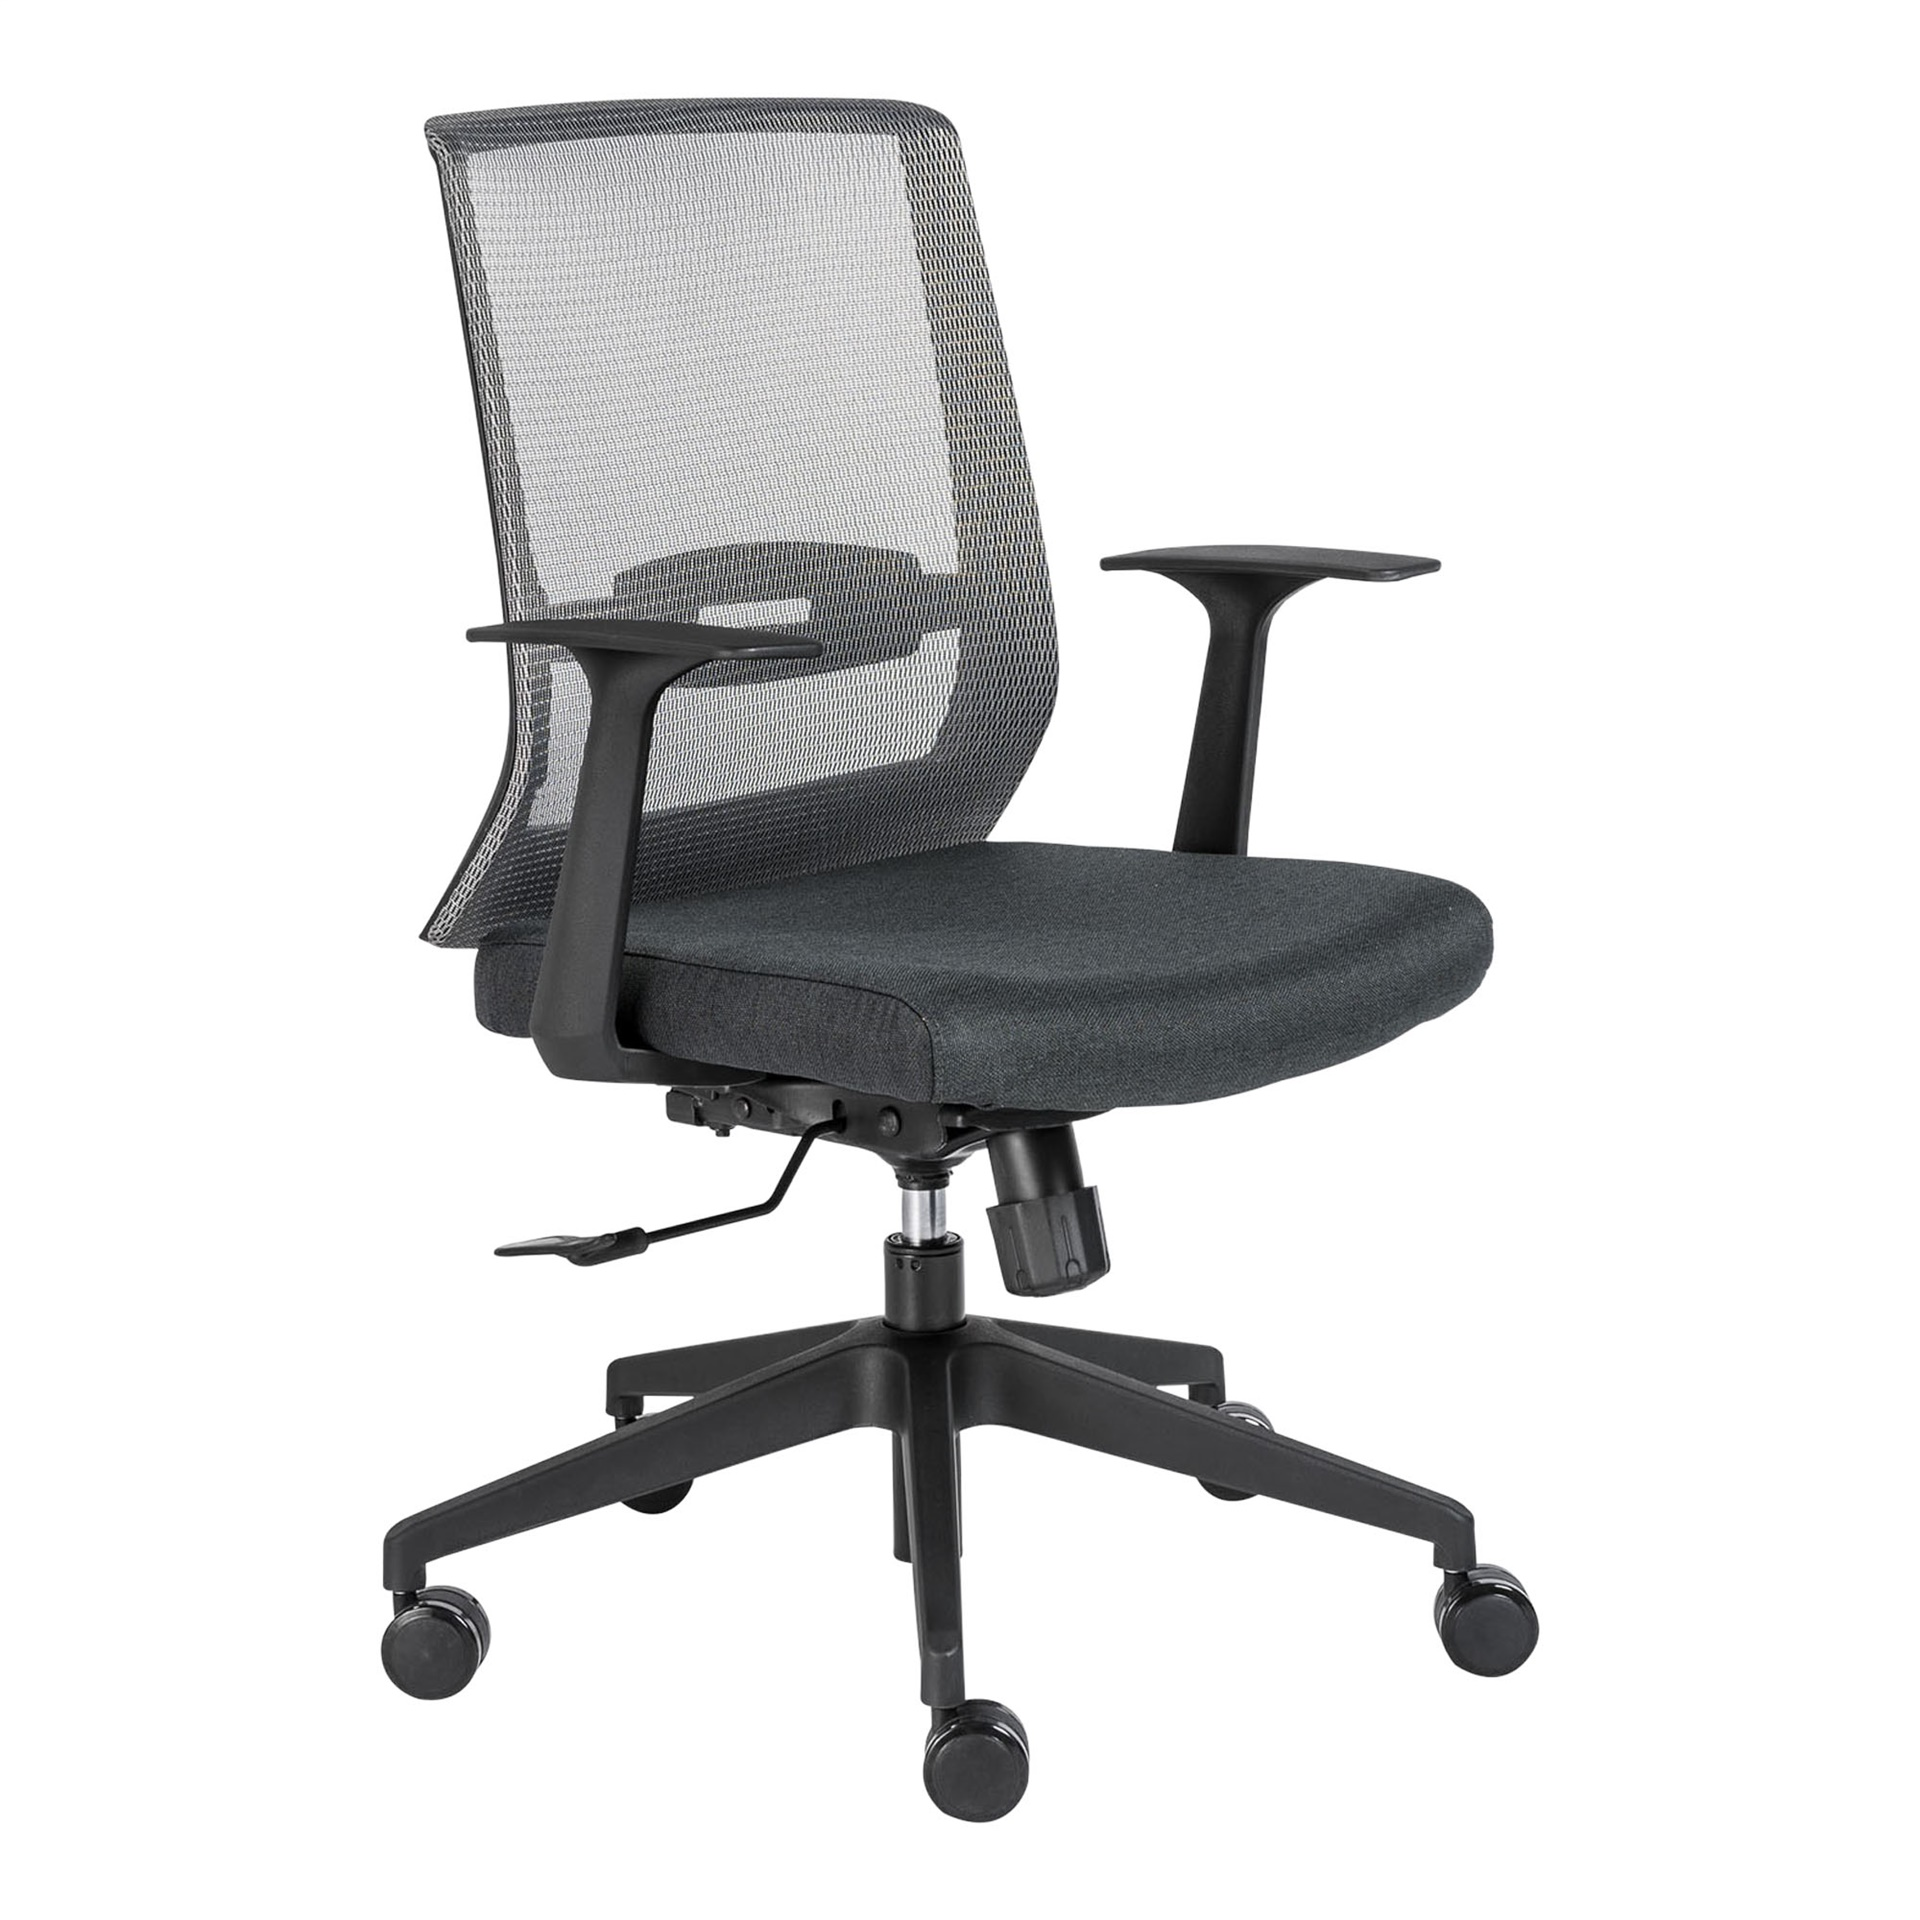 Admirable Fiona Office Chair With Fixed Arms Ocoug Best Dining Table And Chair Ideas Images Ocougorg